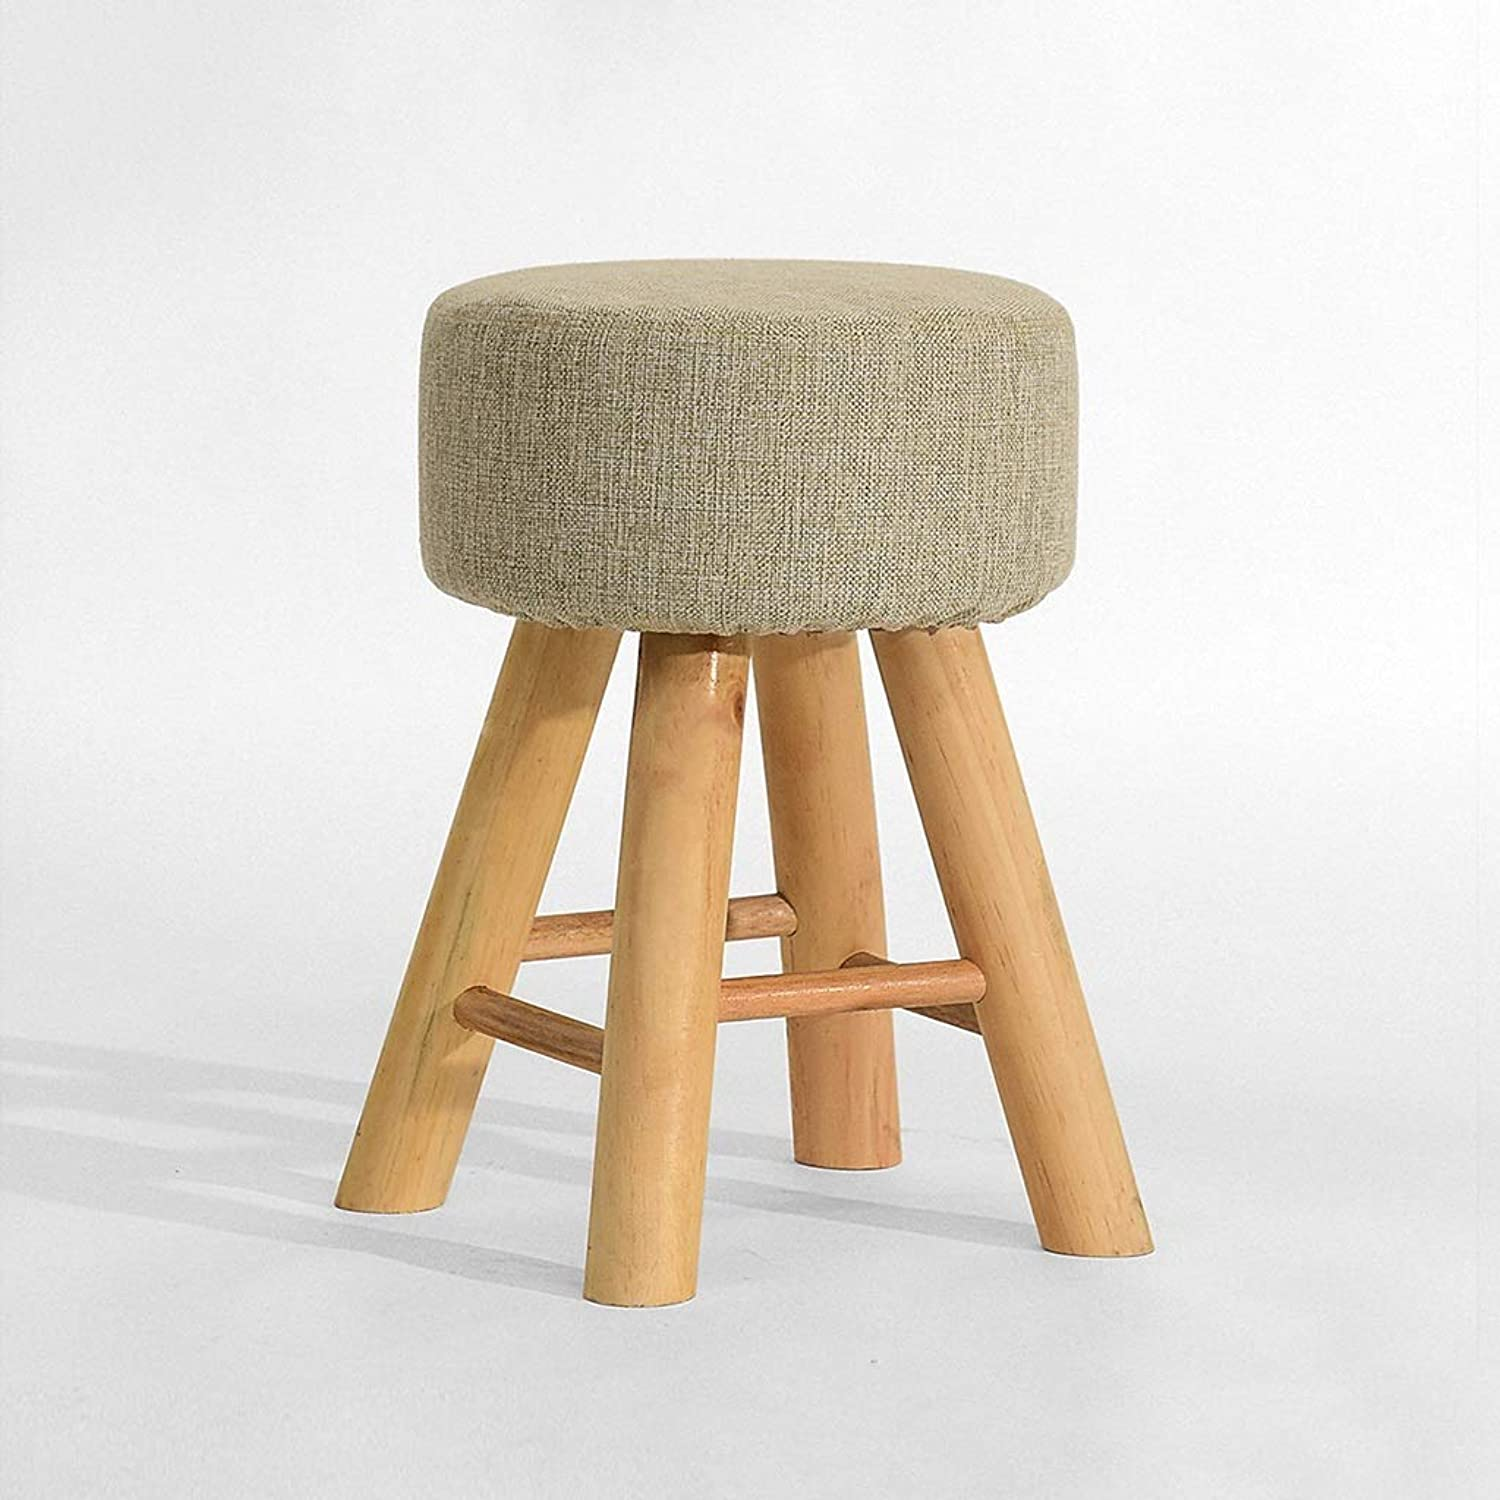 CXQ Fashion Creative Stool Solid Wood Dining Stool Dressing Stool Home Bench Round Stool (color   Plain color)